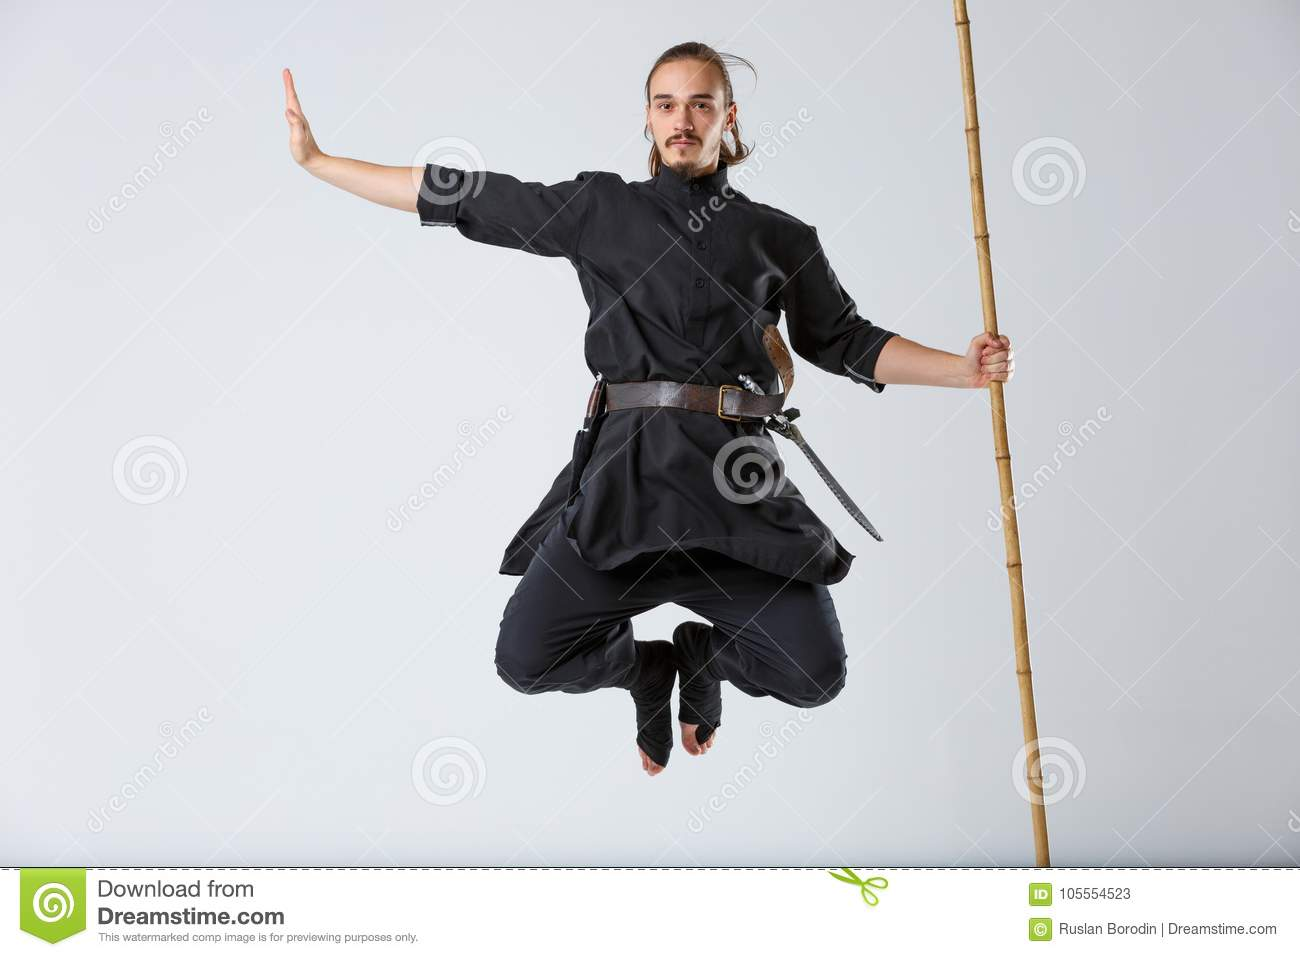 A ninja man in a jump holds a battle stick vertically on a gray background